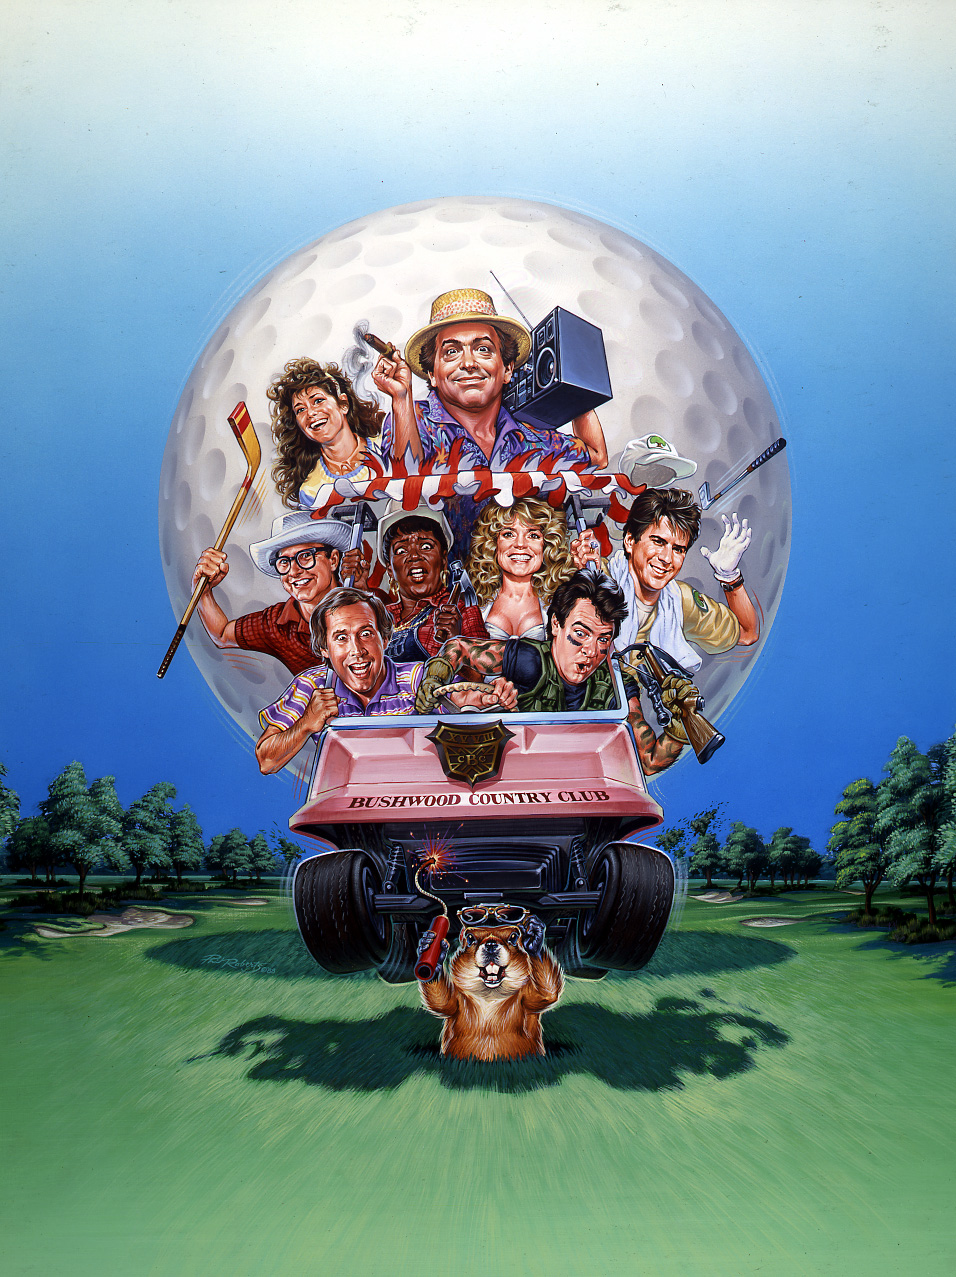 Caddyshack 2. Buy films cachedjun trailers